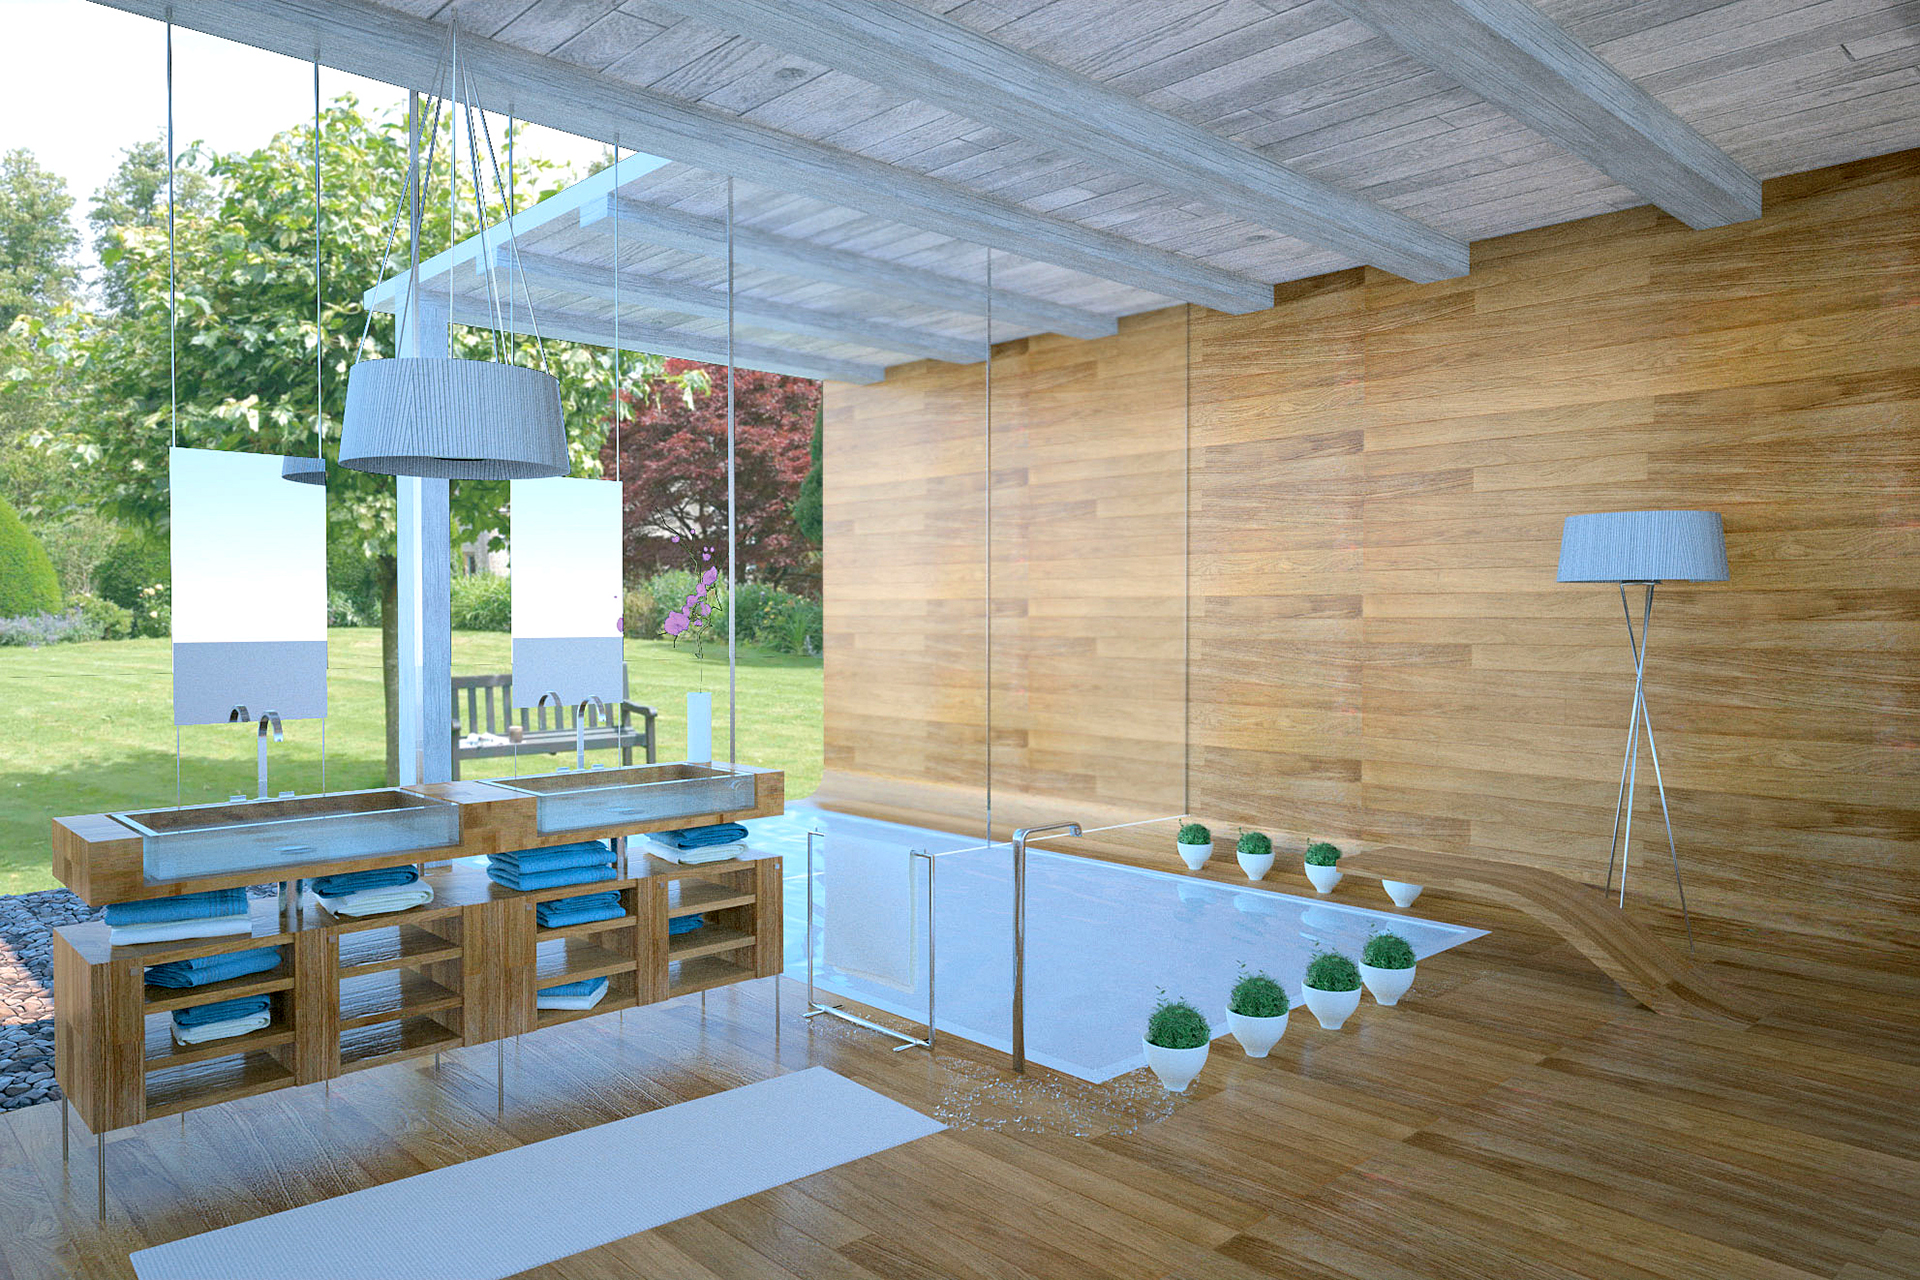 bagnopiscina_architecture_styling_arch-style